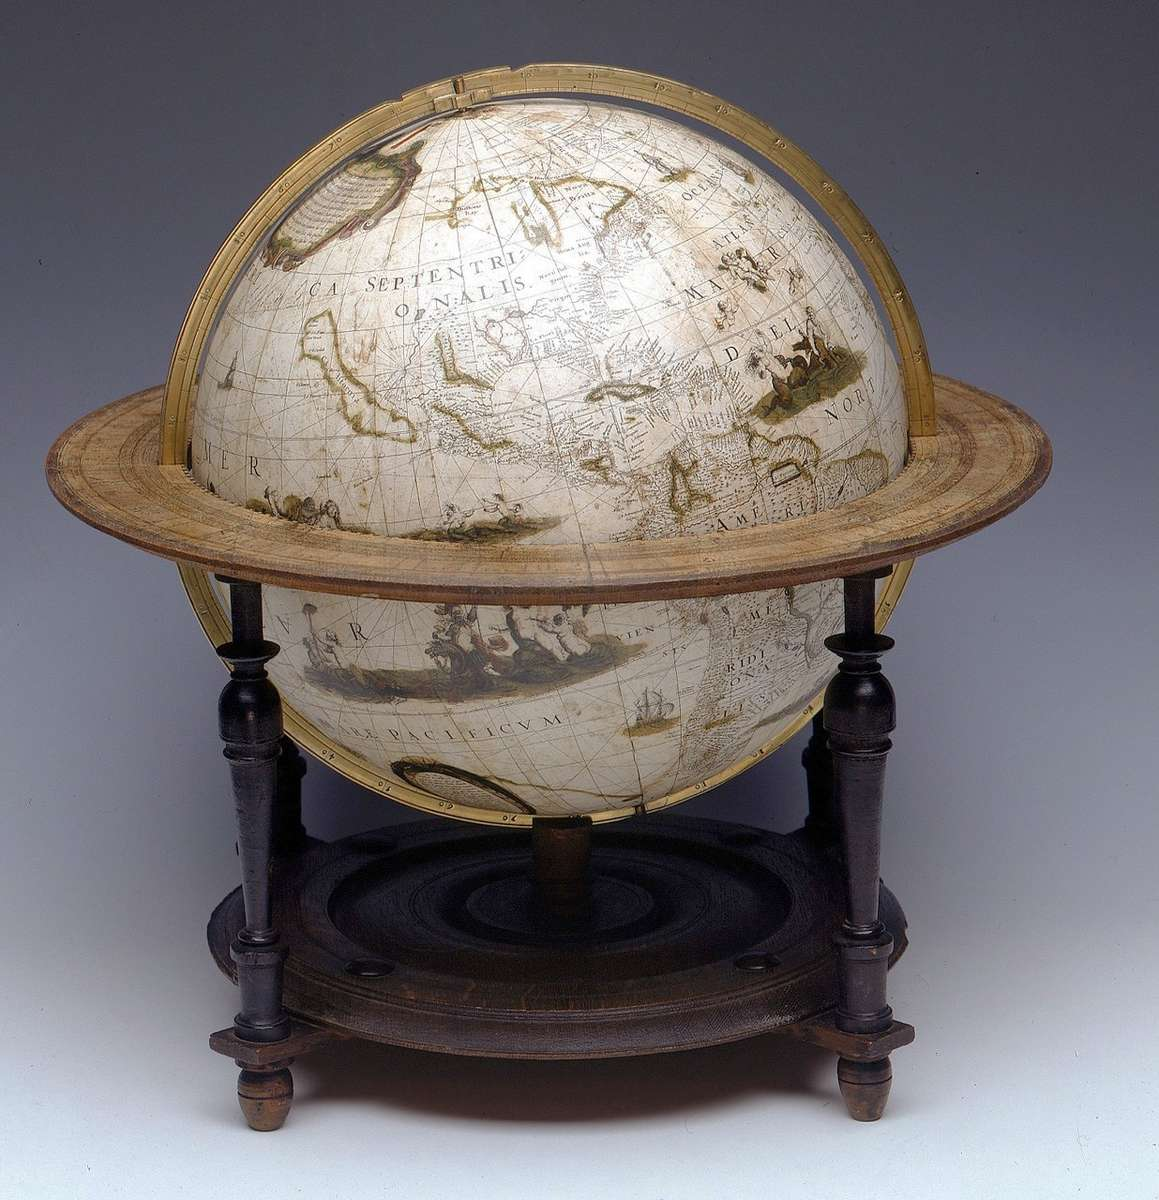 Terrestrial table globe, Jacob Aertsz Colom ca.1640-® National Maritime Museum, London